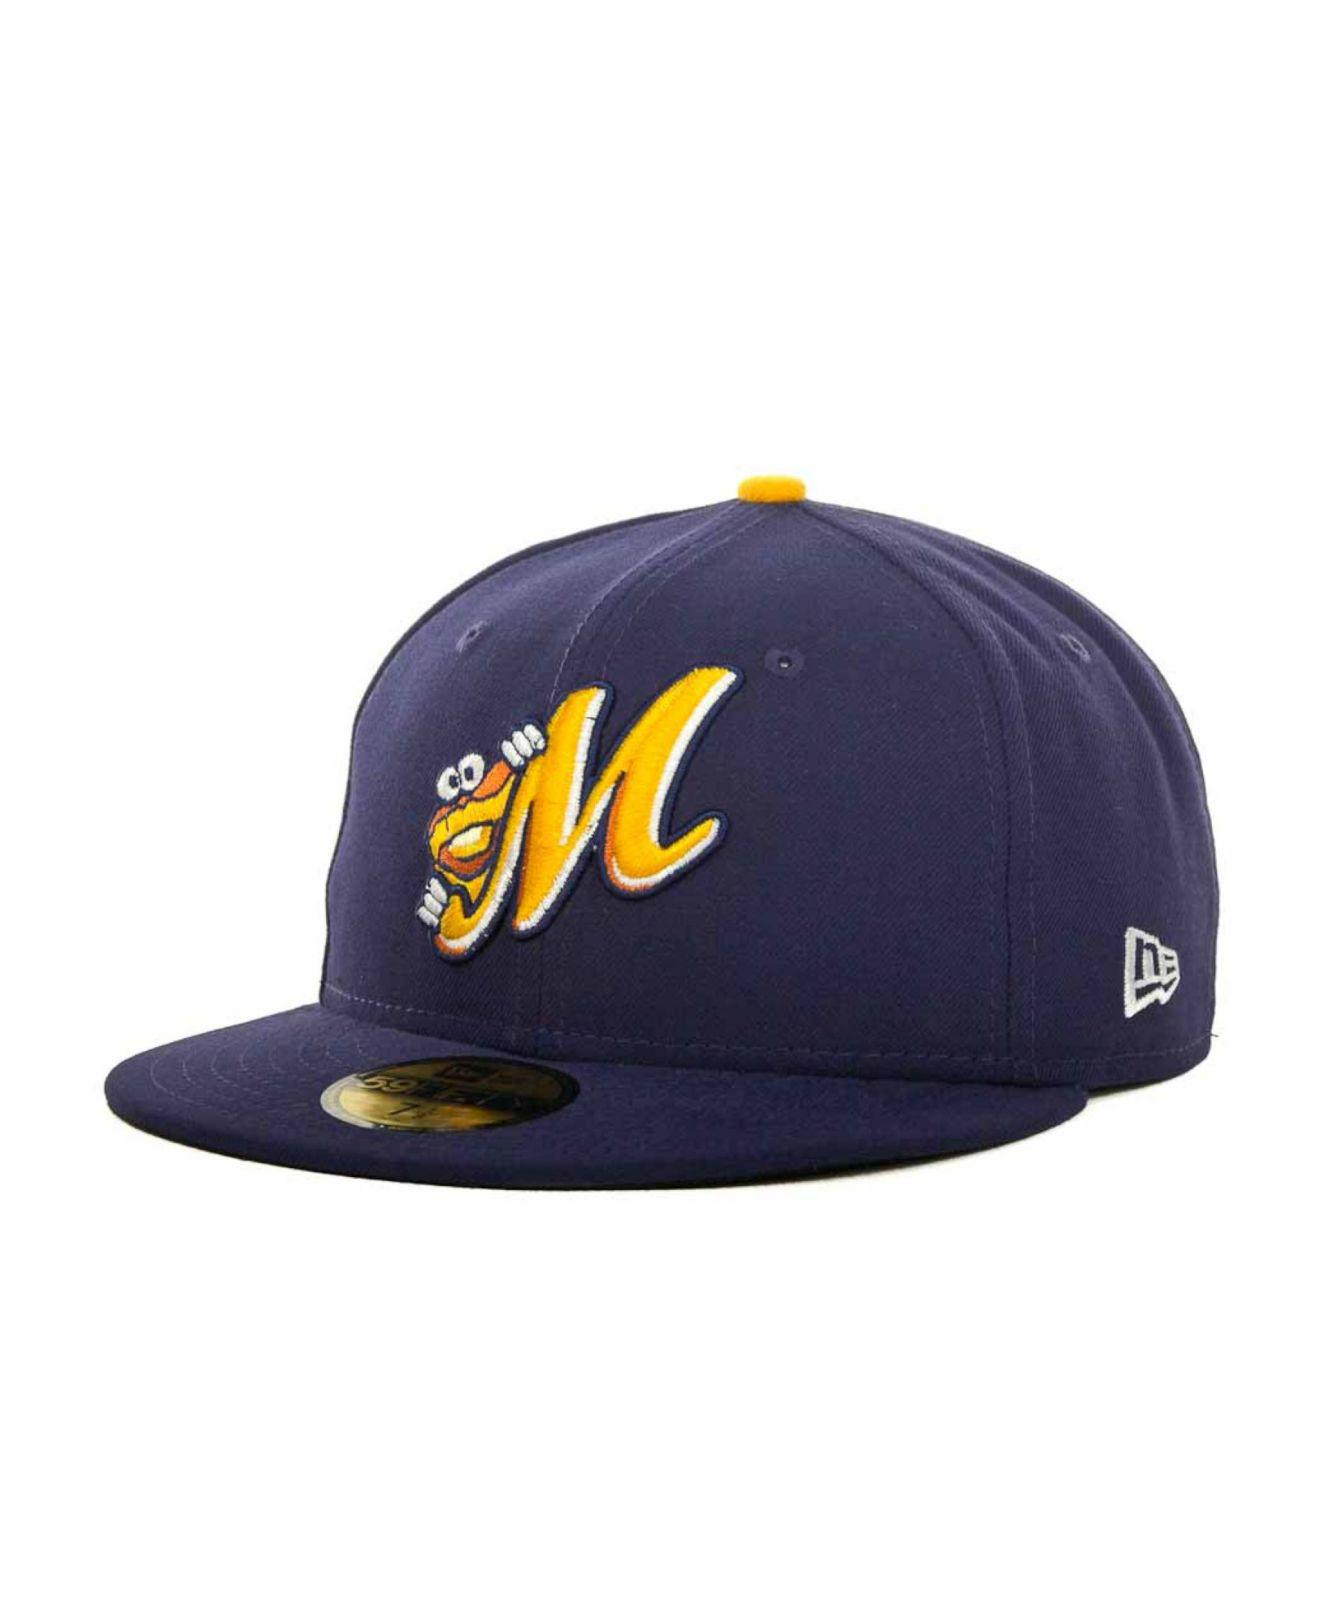 1087fbd1b82 KTZ - Blue Montgomery Biscuits Milb 59fifty Cap for Men - Lyst. View  fullscreen